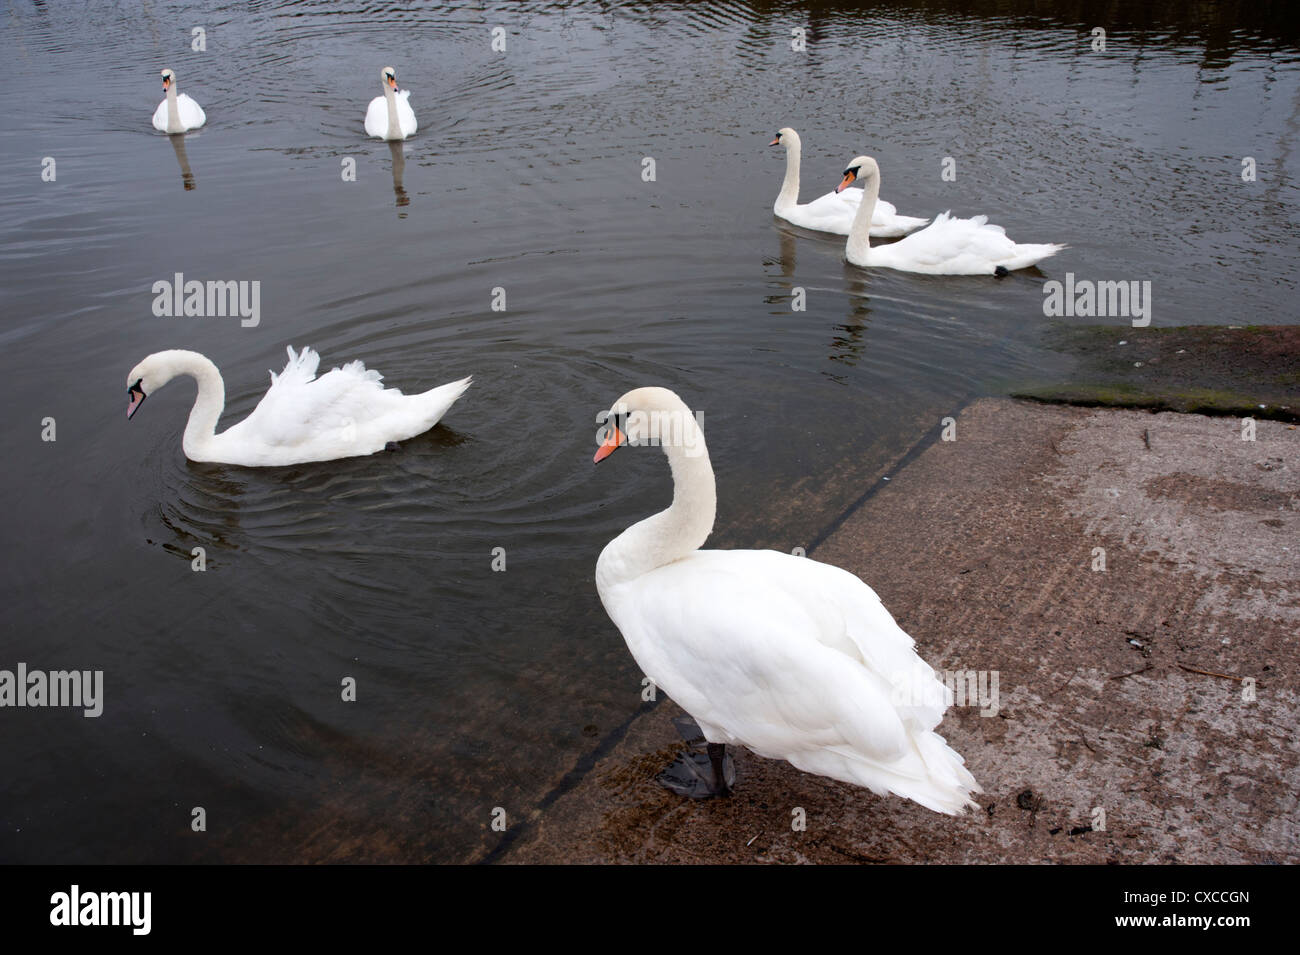 Swans in Whitehaven Harbour, Cumbria - Stock Image